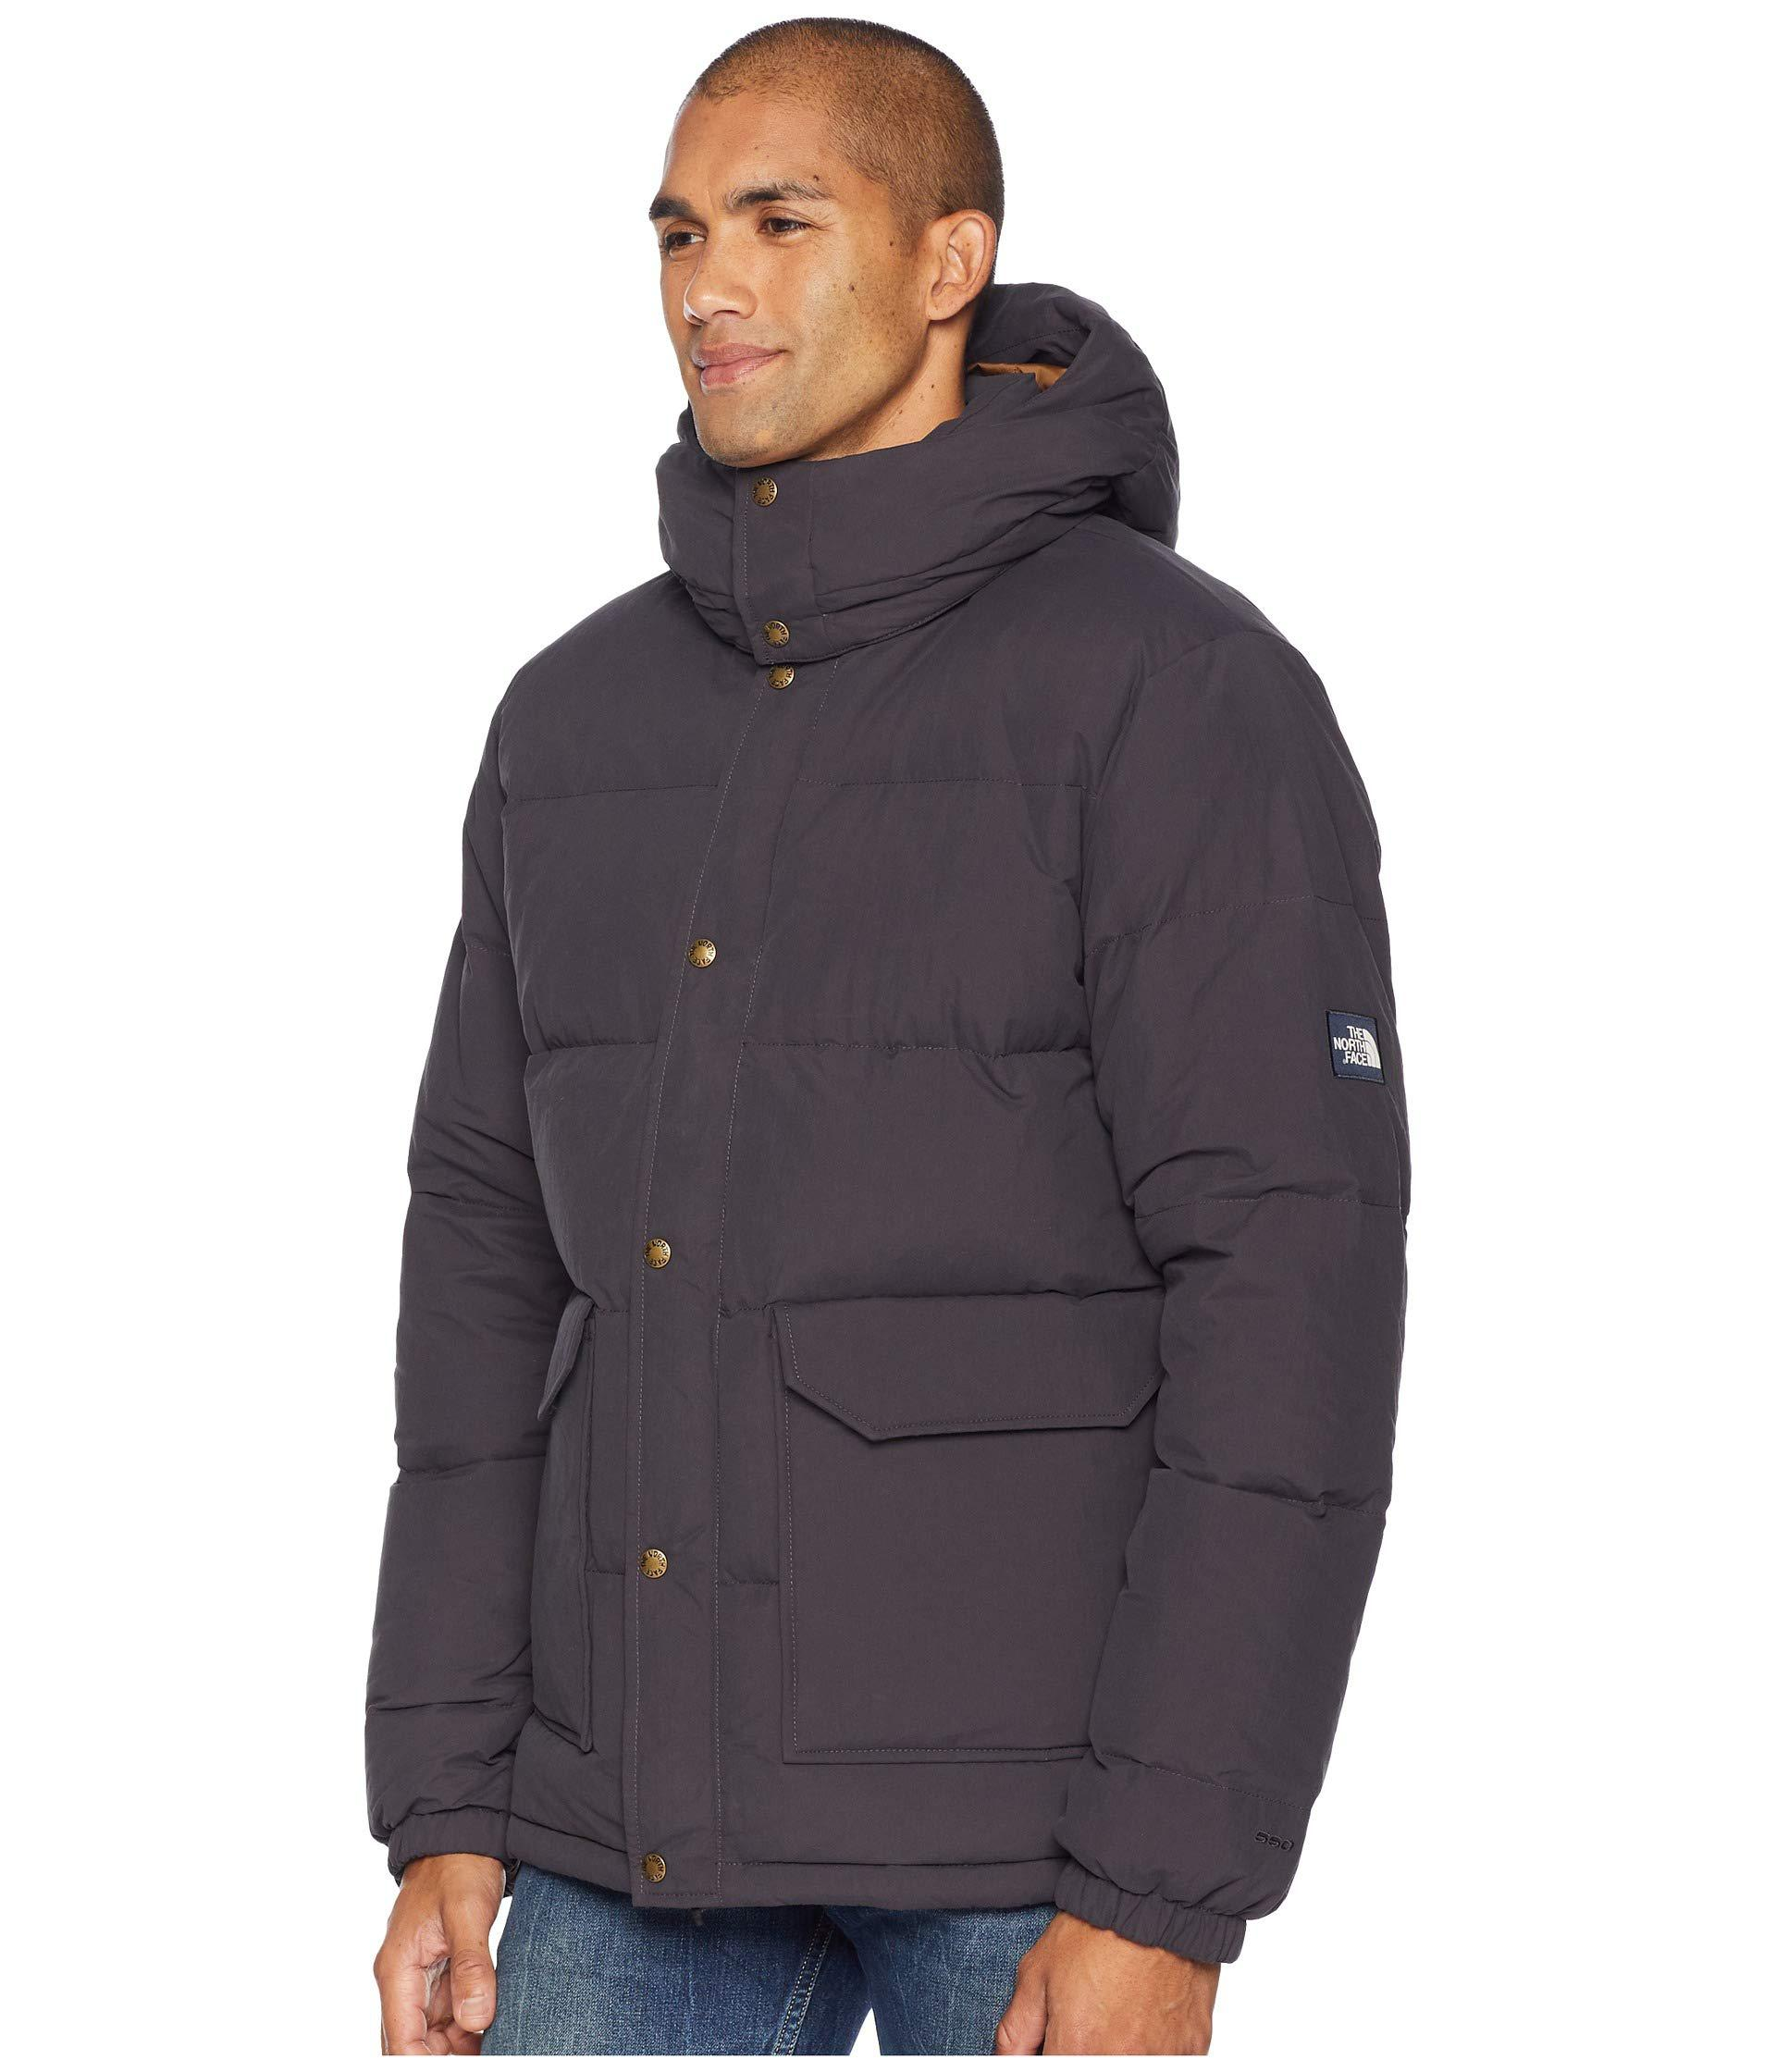 Lyst - The North Face Down Sierra 2.0 Jacket (weathered Black) Men s ... c057ce9b7